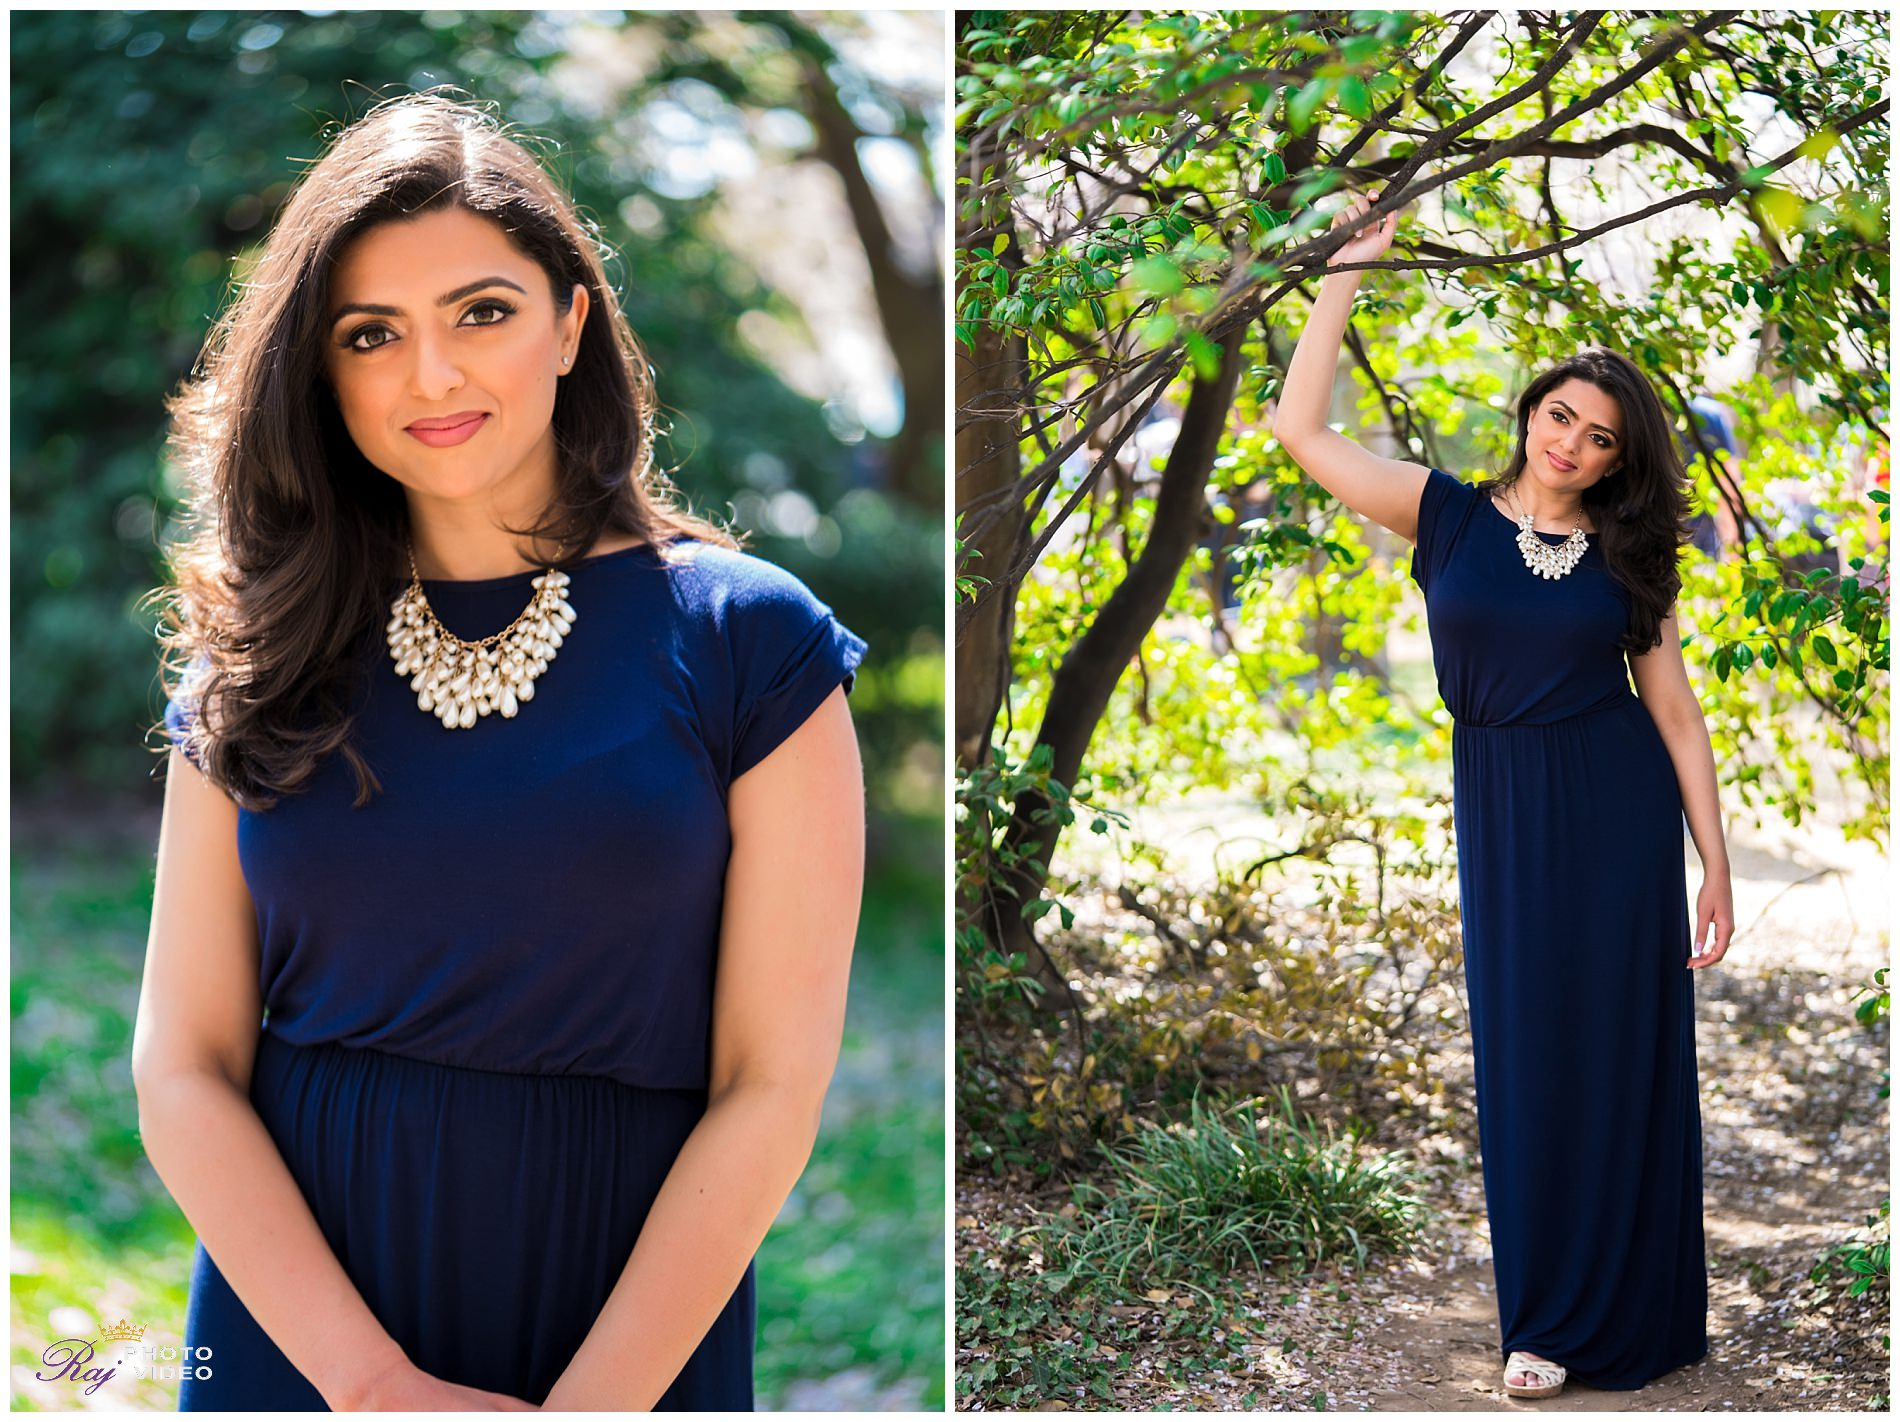 National-Cherry-Blossom-Festival-Washington-DC-Engagement-Shoot-Aditi-Peter-9.jpg